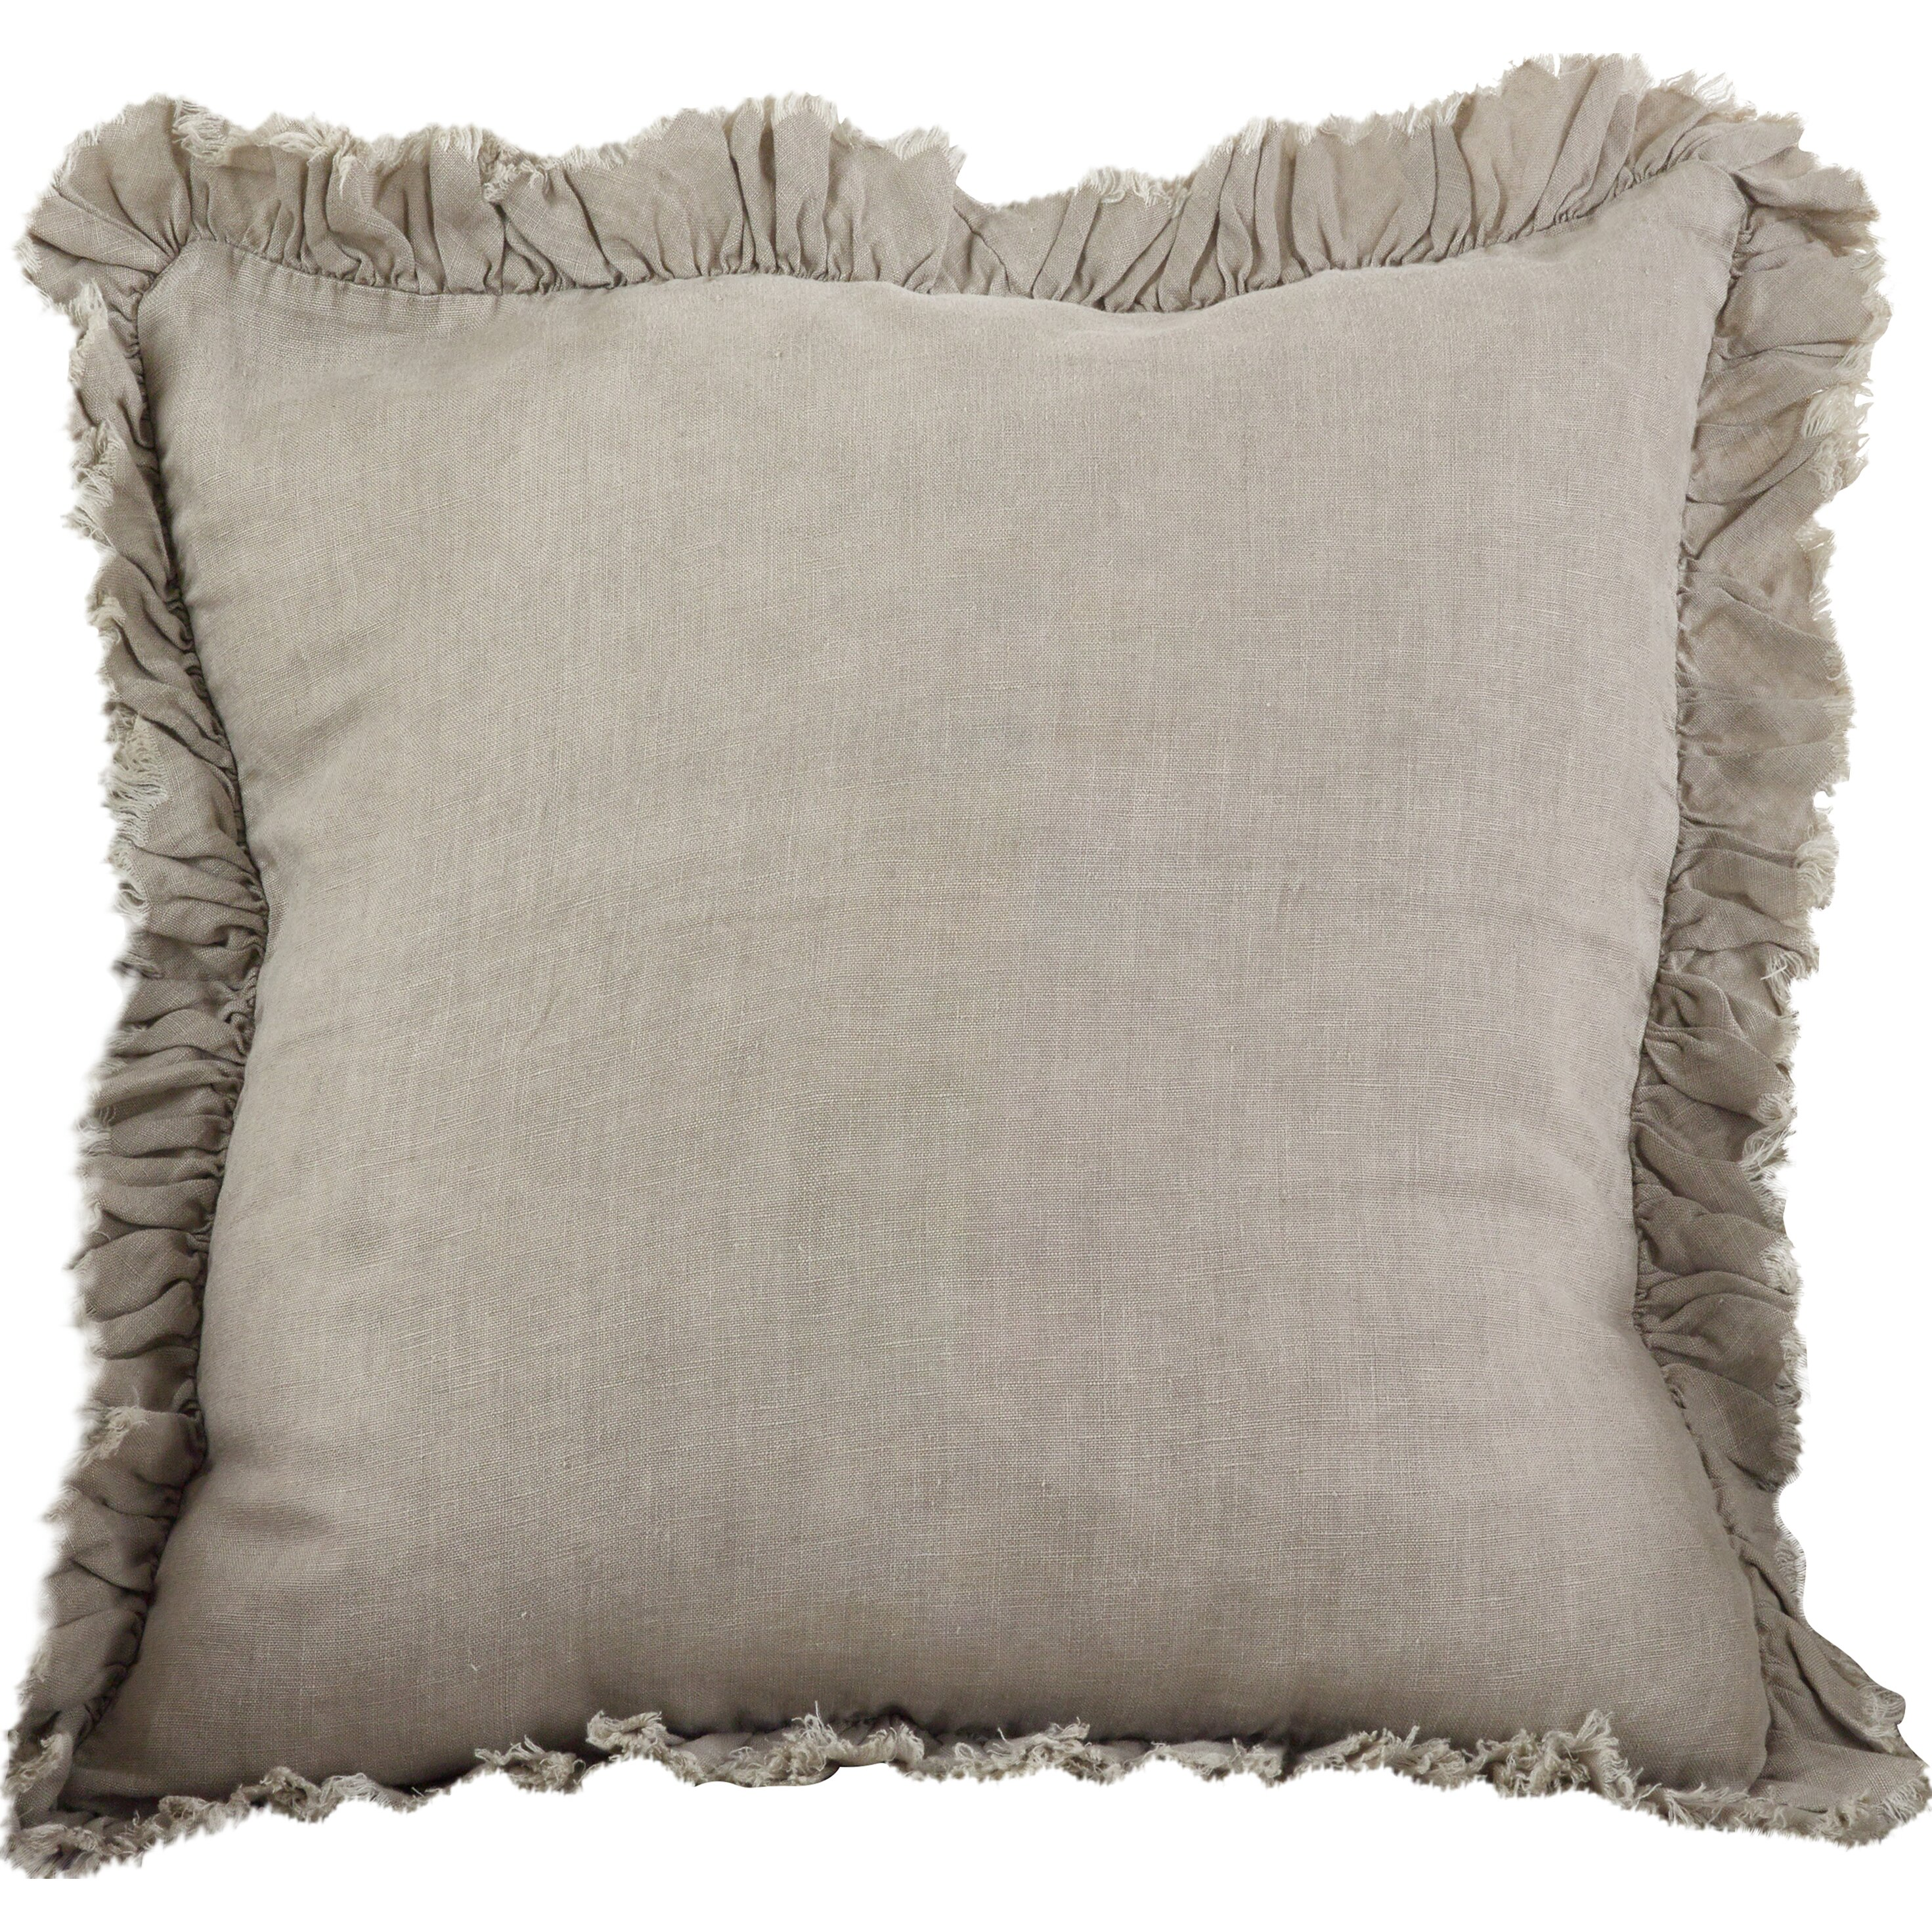 Ruffled Linen Throw Pillow Wayfair